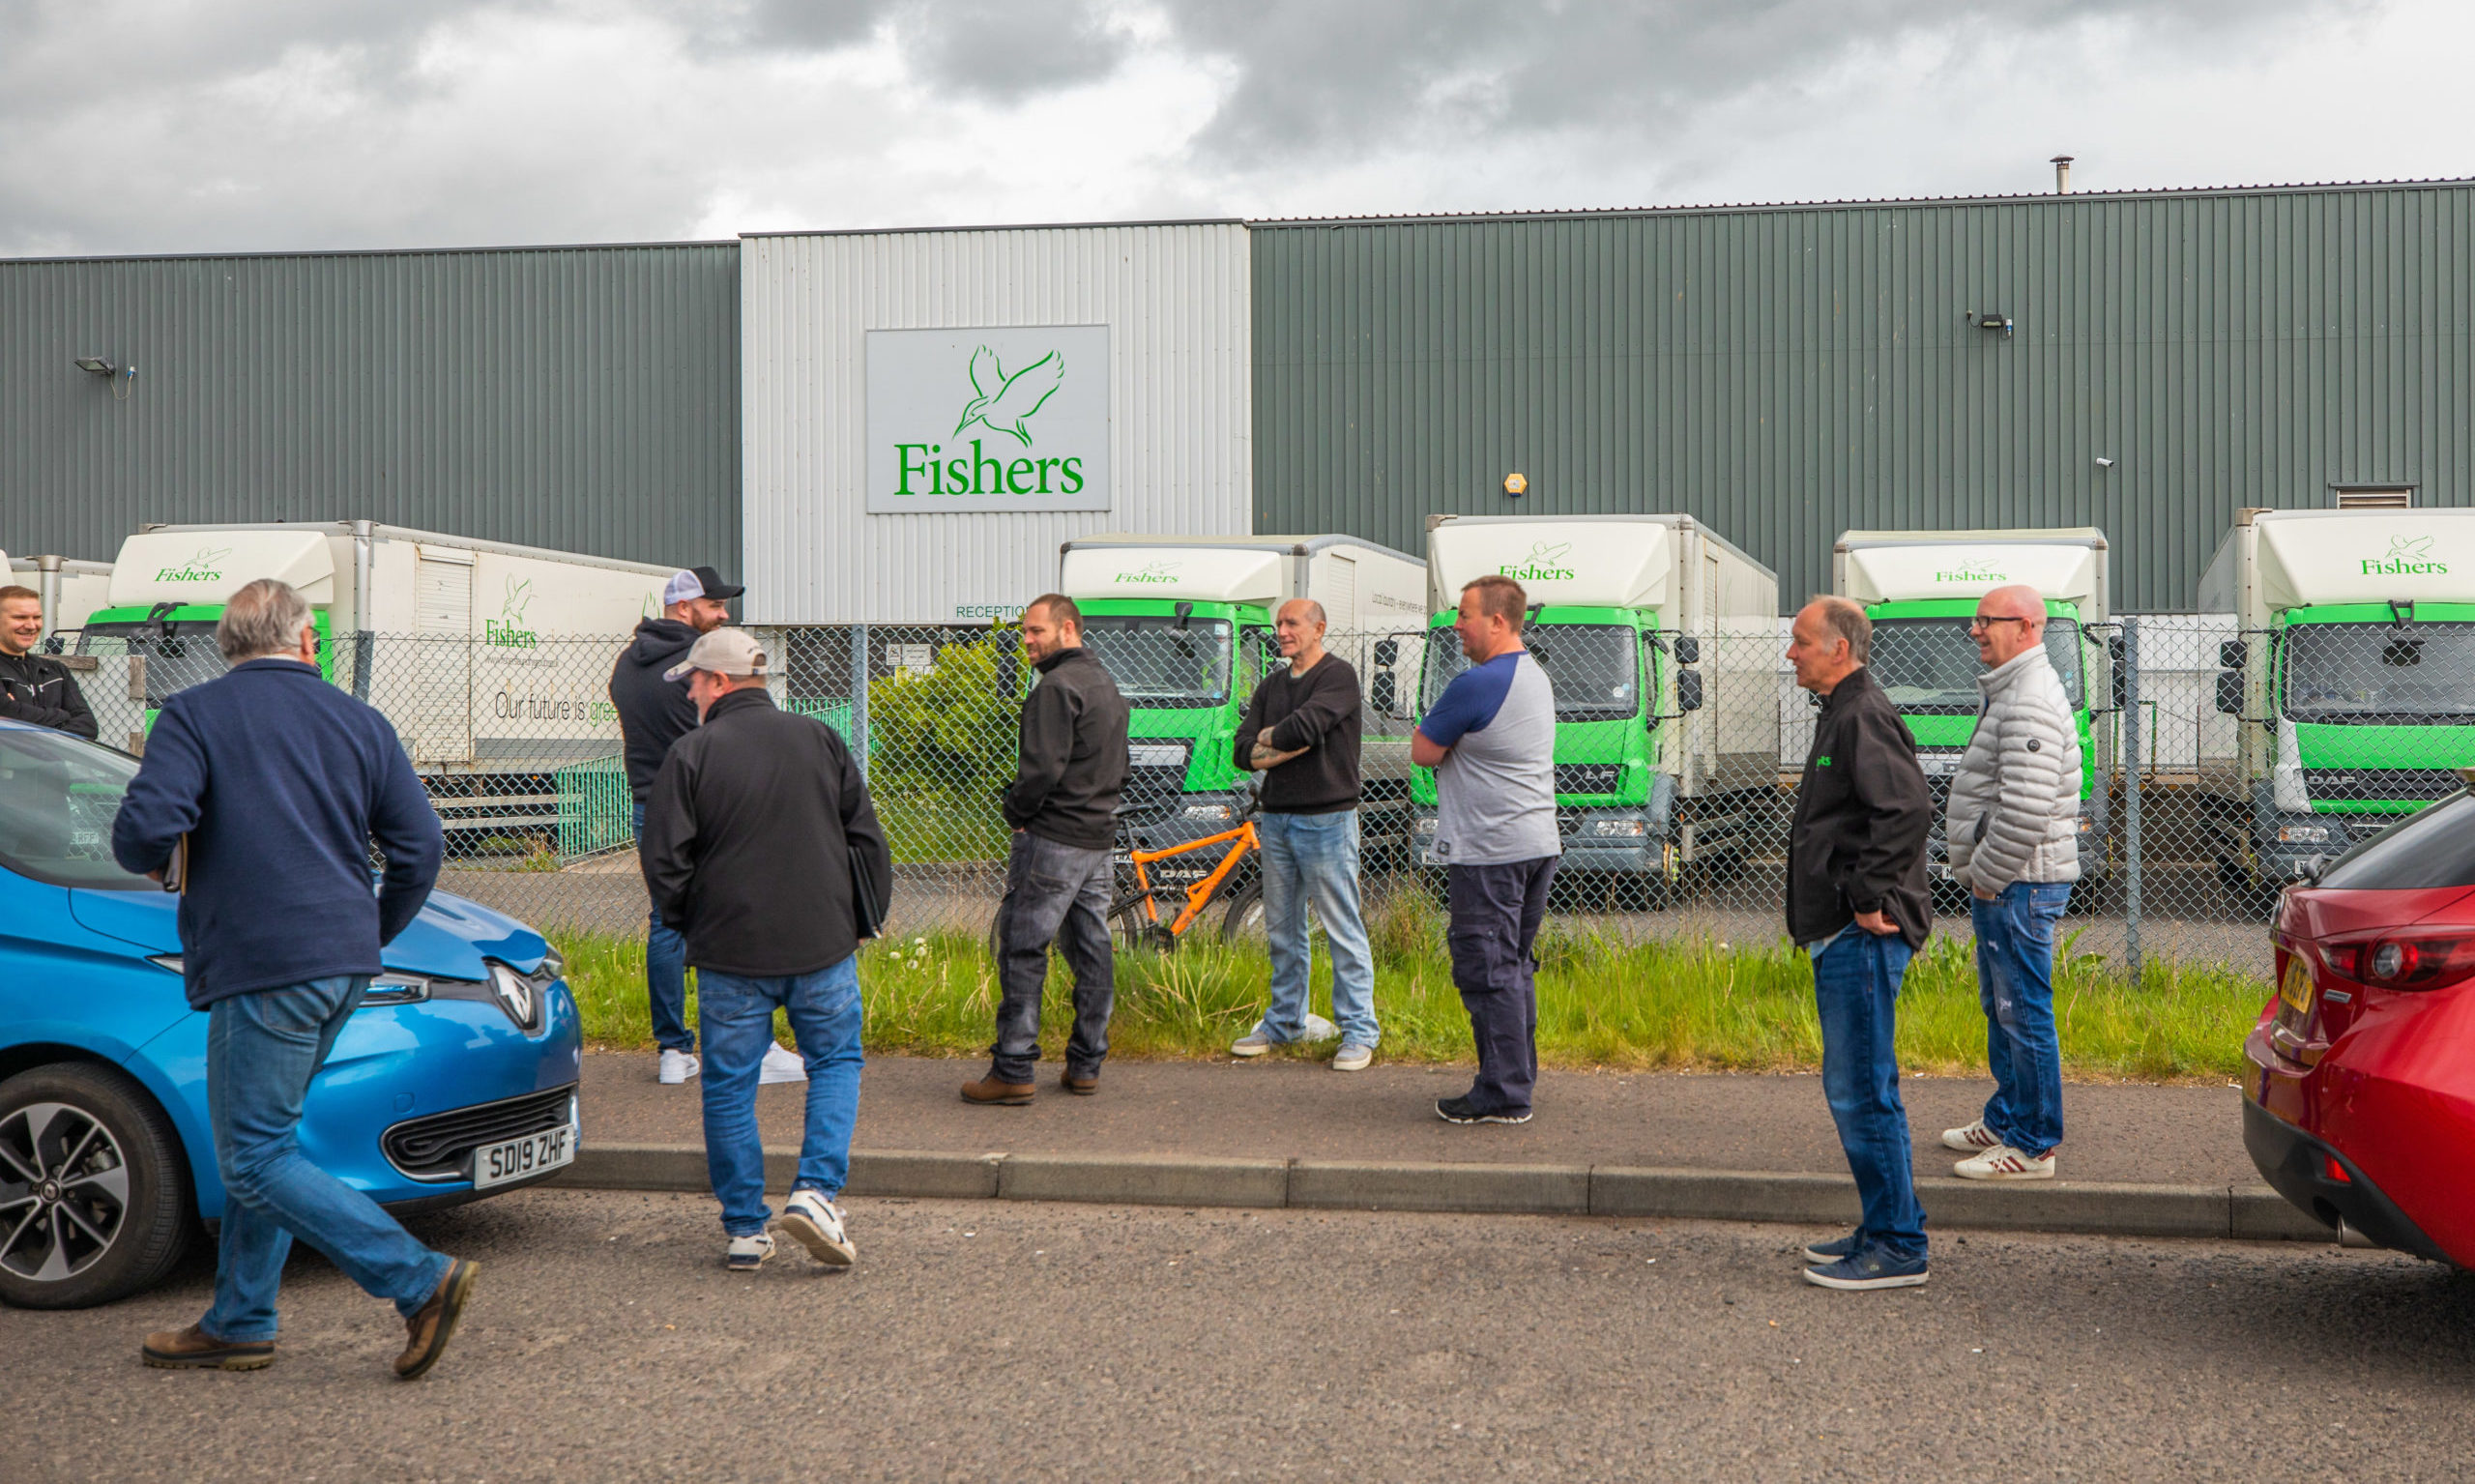 Perth laundry firm Fishers was among the first Perth and Kinross firms to announce job losses during lockdown.